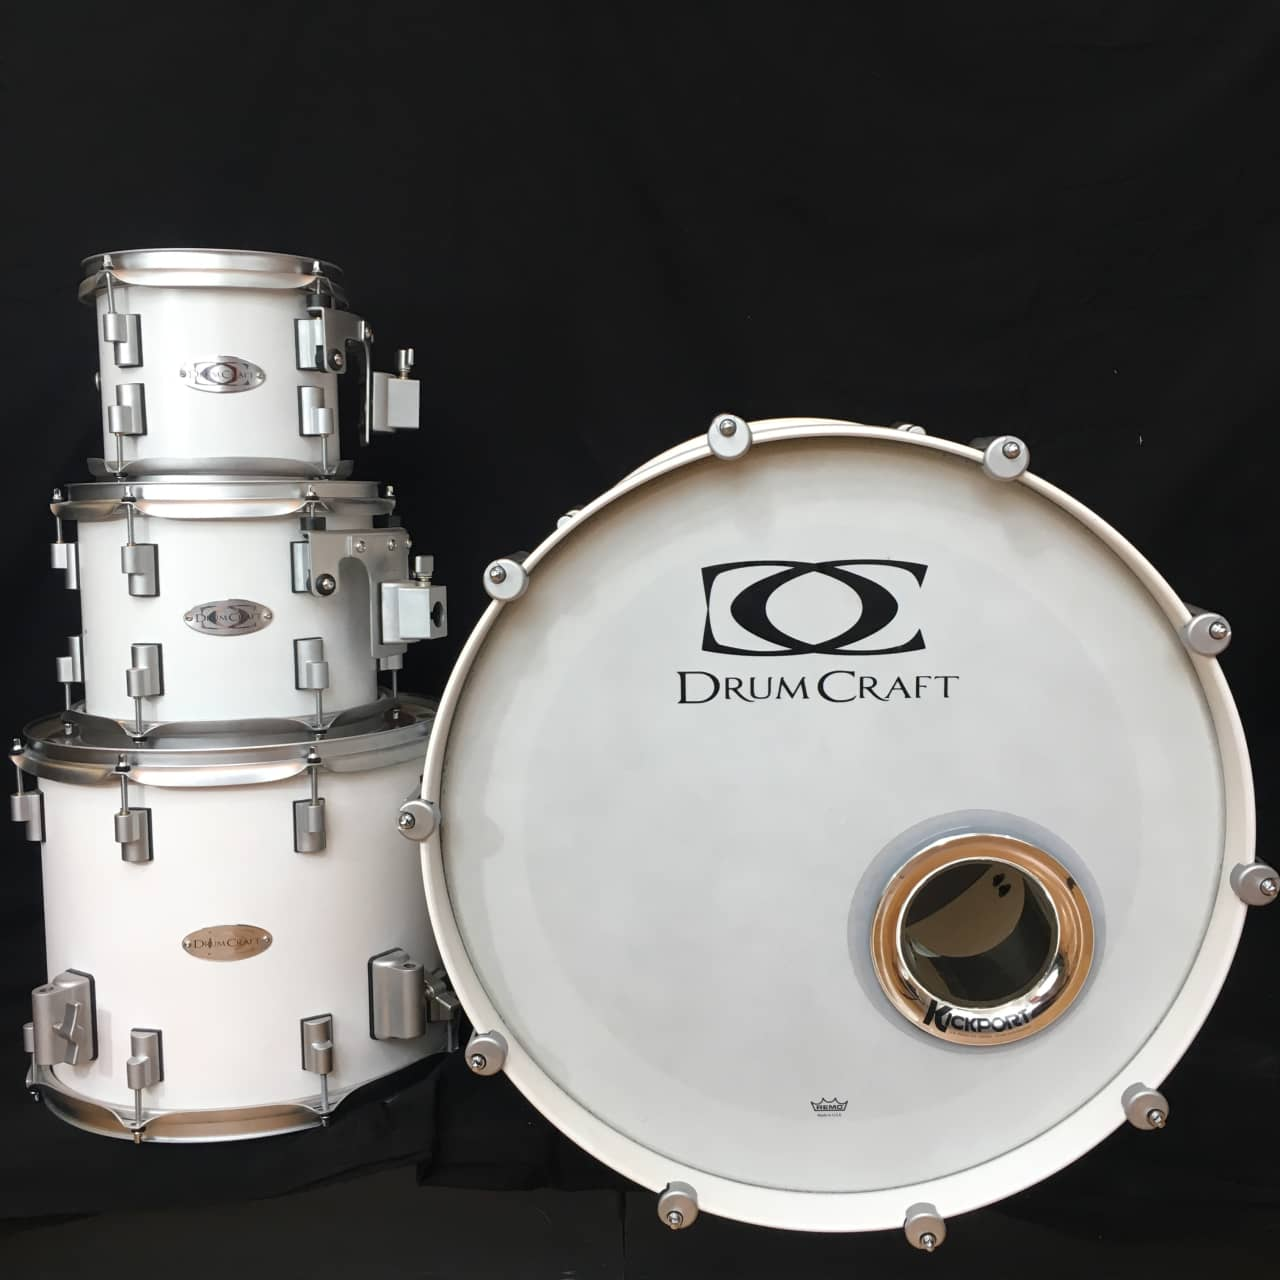 Drumcraft series 8 4 piece drum kit reverb for 18 inch floor tom for sale